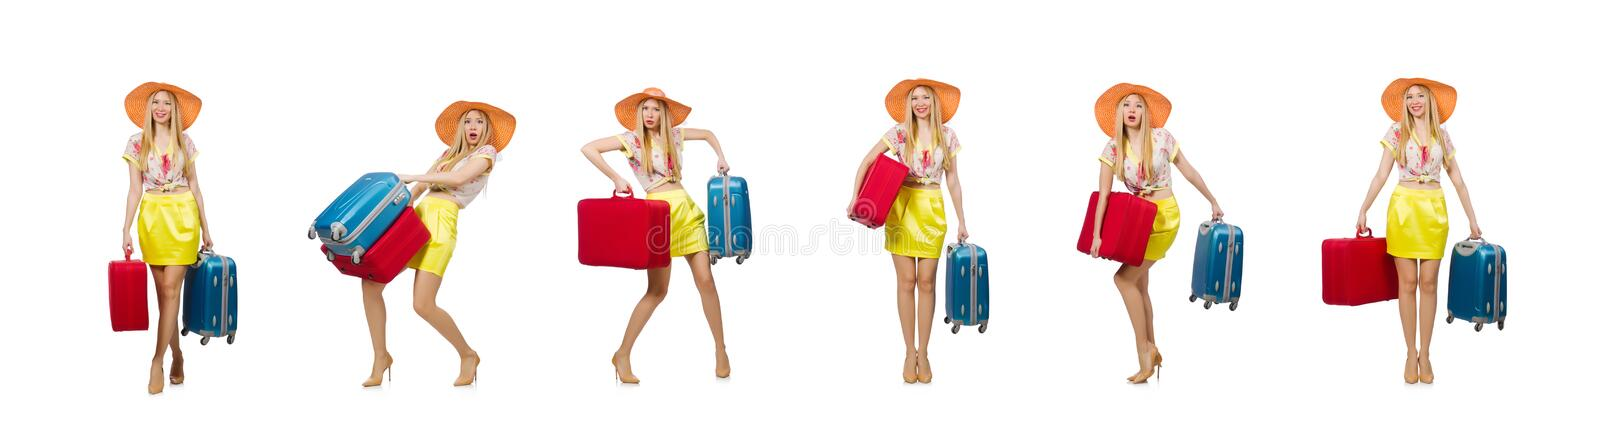 Travel vacation concept with luggage on white royalty free stock photography